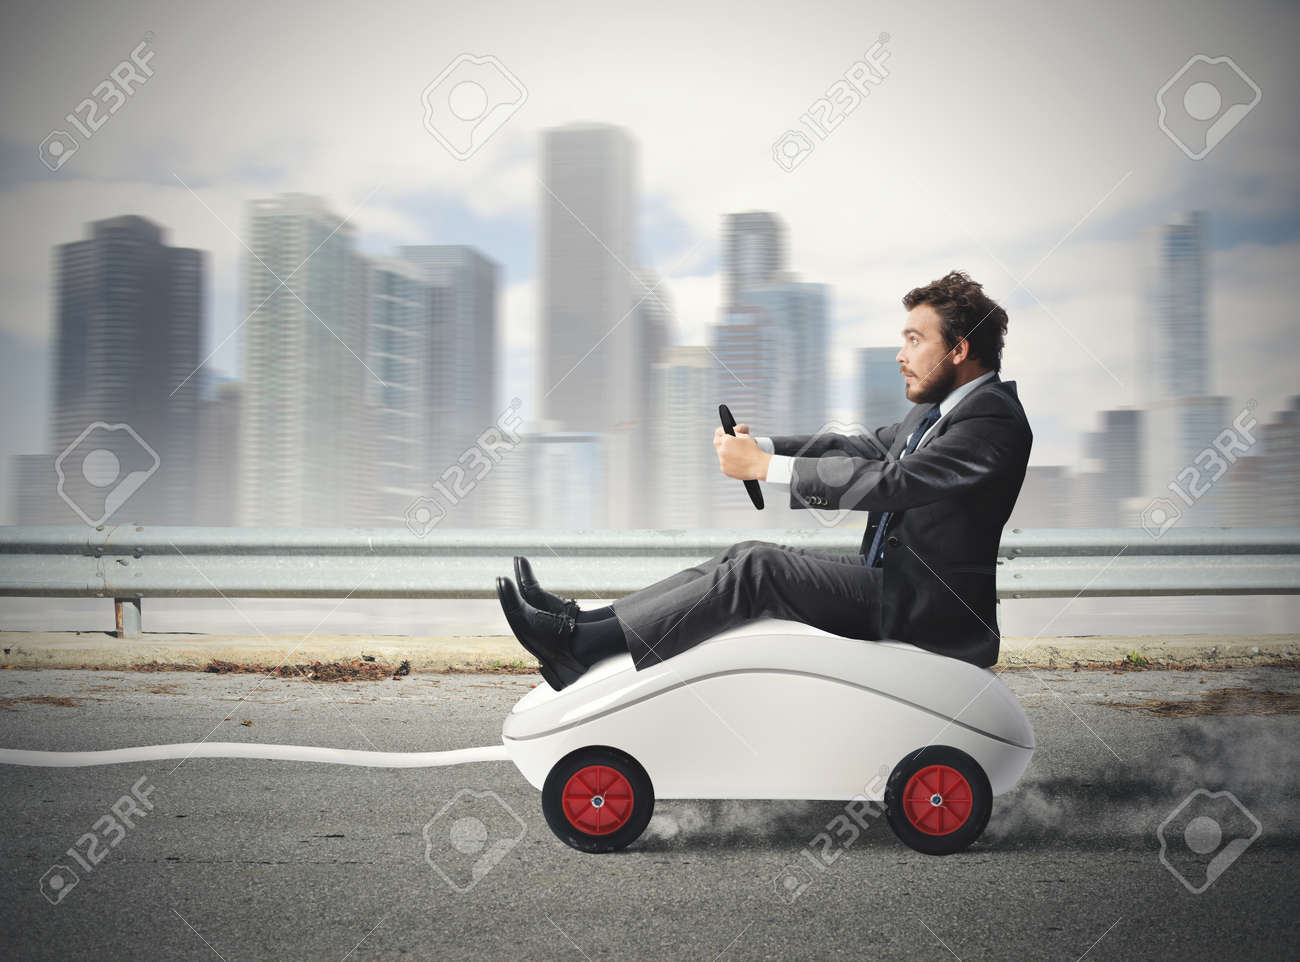 Concept of fast internet with mouse like a car - 23529562